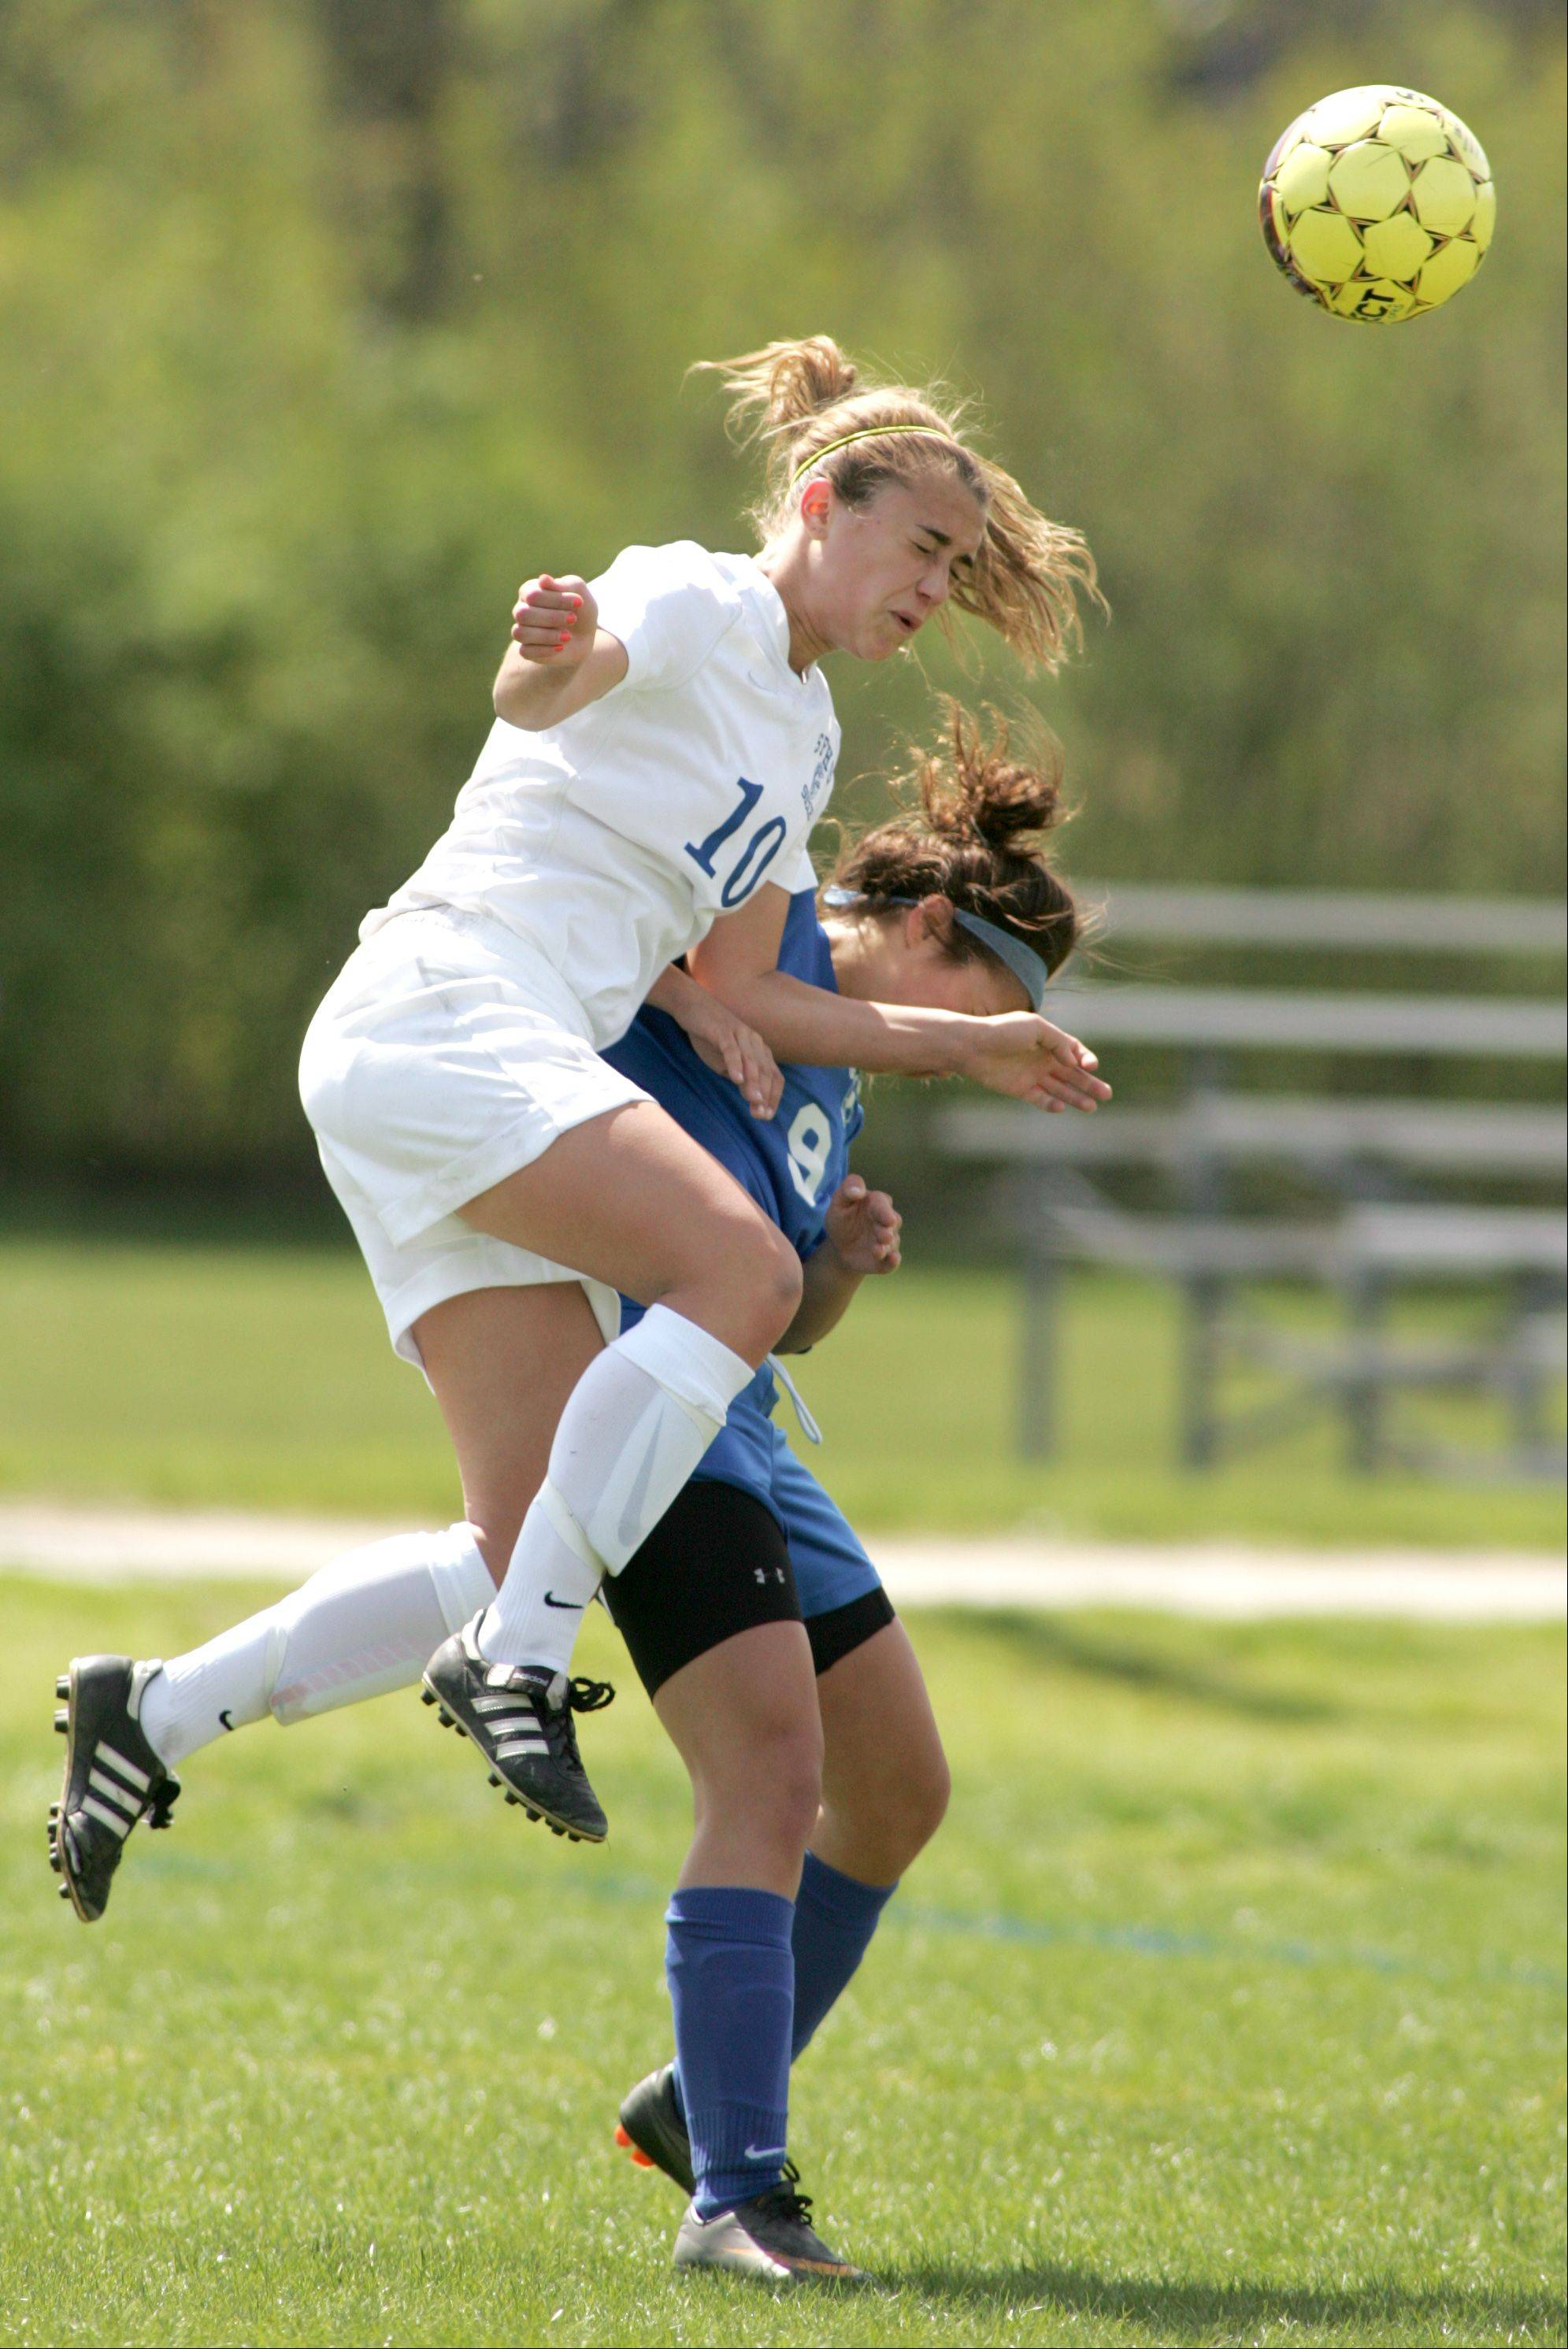 St. Francis's Amanda Gaggioli, left, battles Glenbard South's Danielle Pitaro during Saturday's girls soccer game.